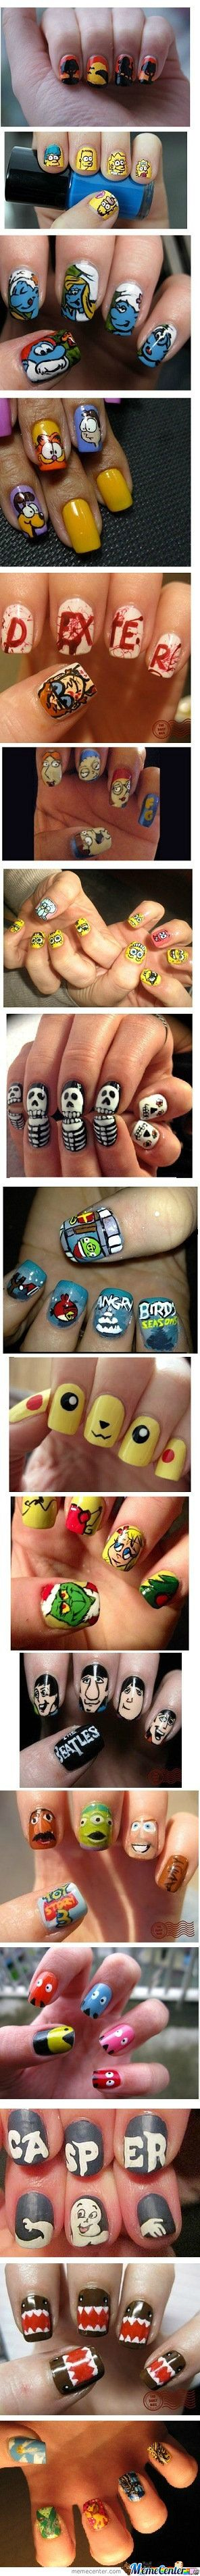 The Simpsons, Garfield, Dexter, The Smurfs, Sponge Bob, Angry Birds, The Beatles, The Grinch, Pokemon, Toy Story, Casper the Friendly Ghost, Pac-Man, Domo, and more geeky Nails